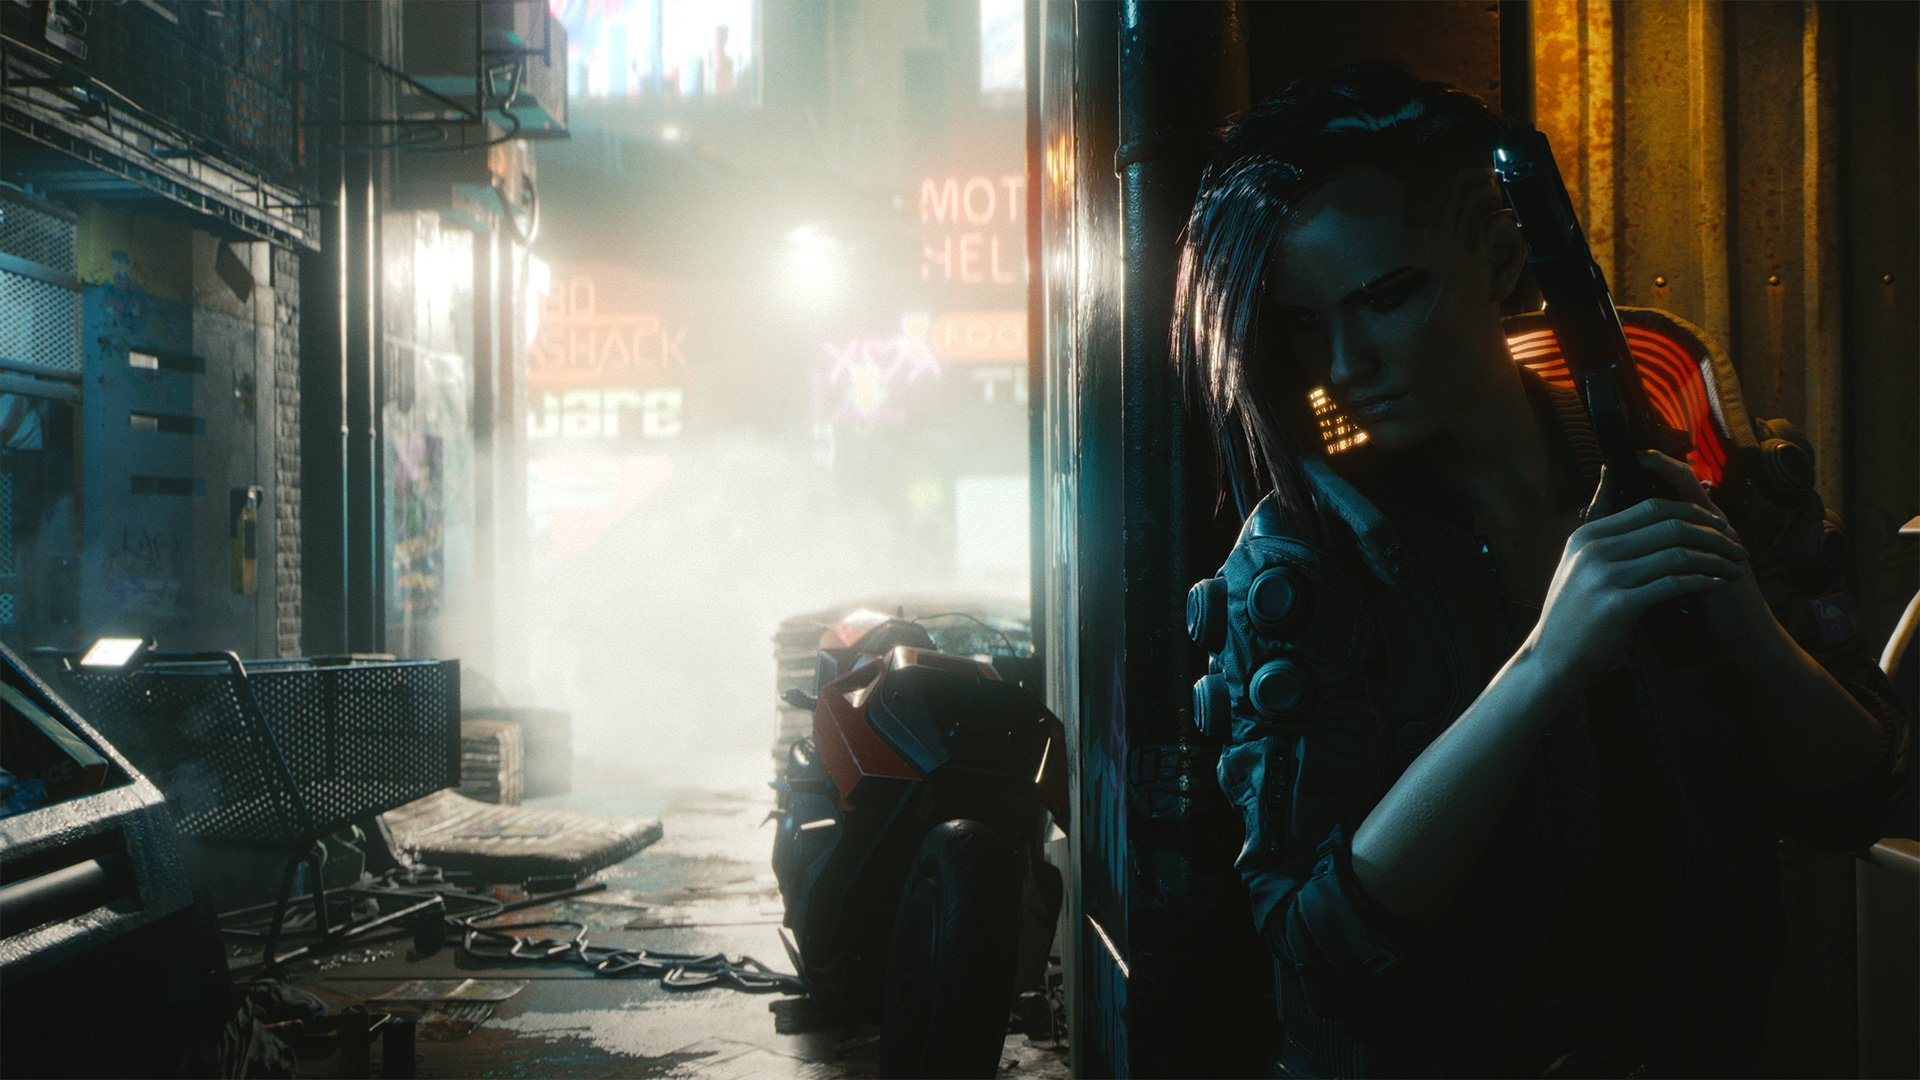 Cyberpunk 2077 will rock PCs and consoles later this year.